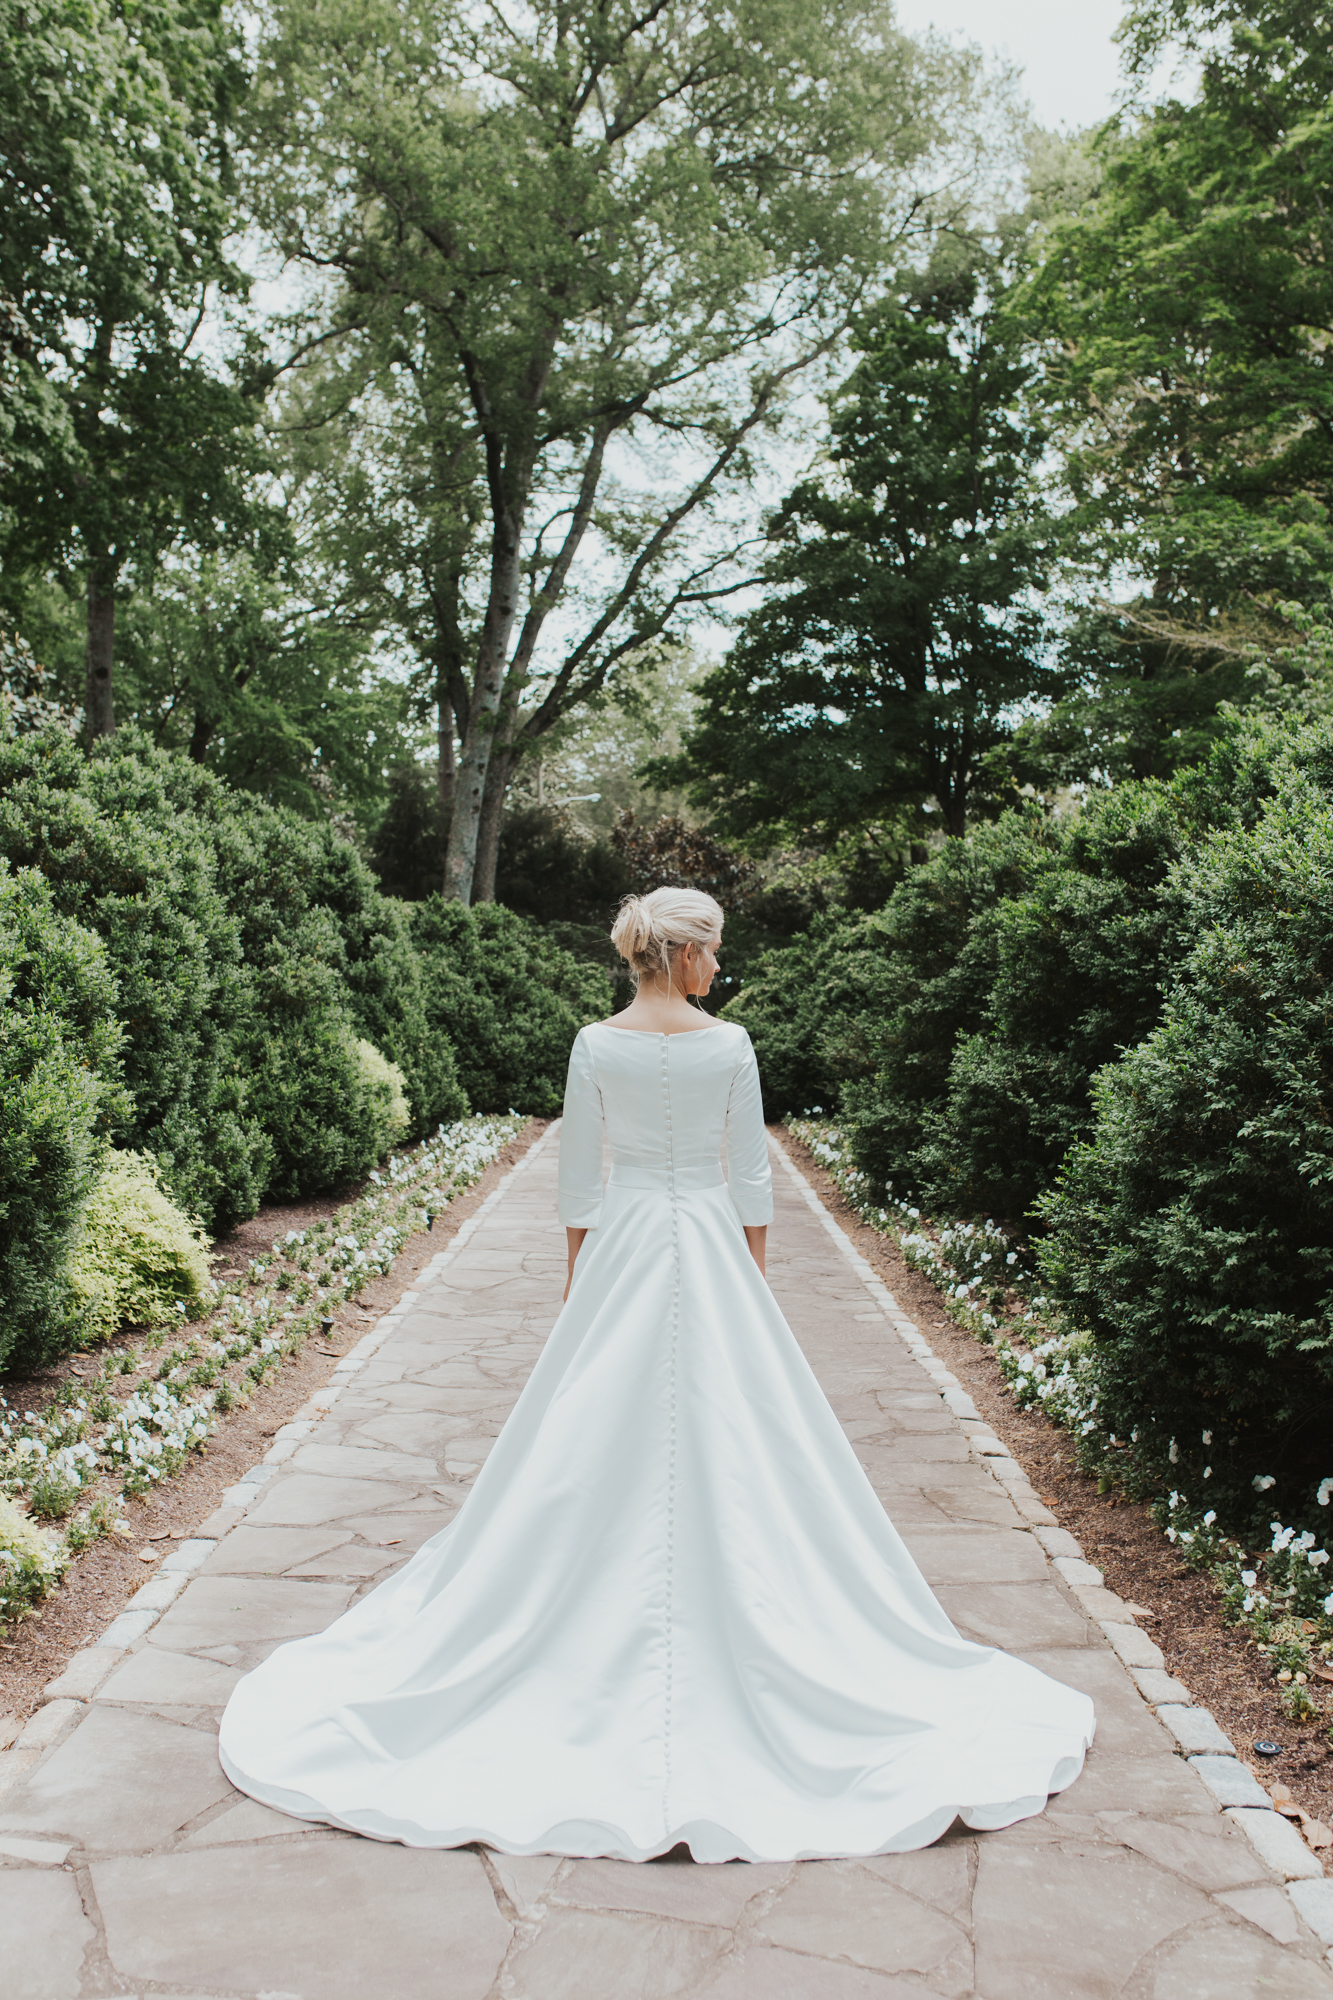 NashvilleTN_BelleMeadePlantation_Springtime_Wedding_MollyPeach-399.jpg